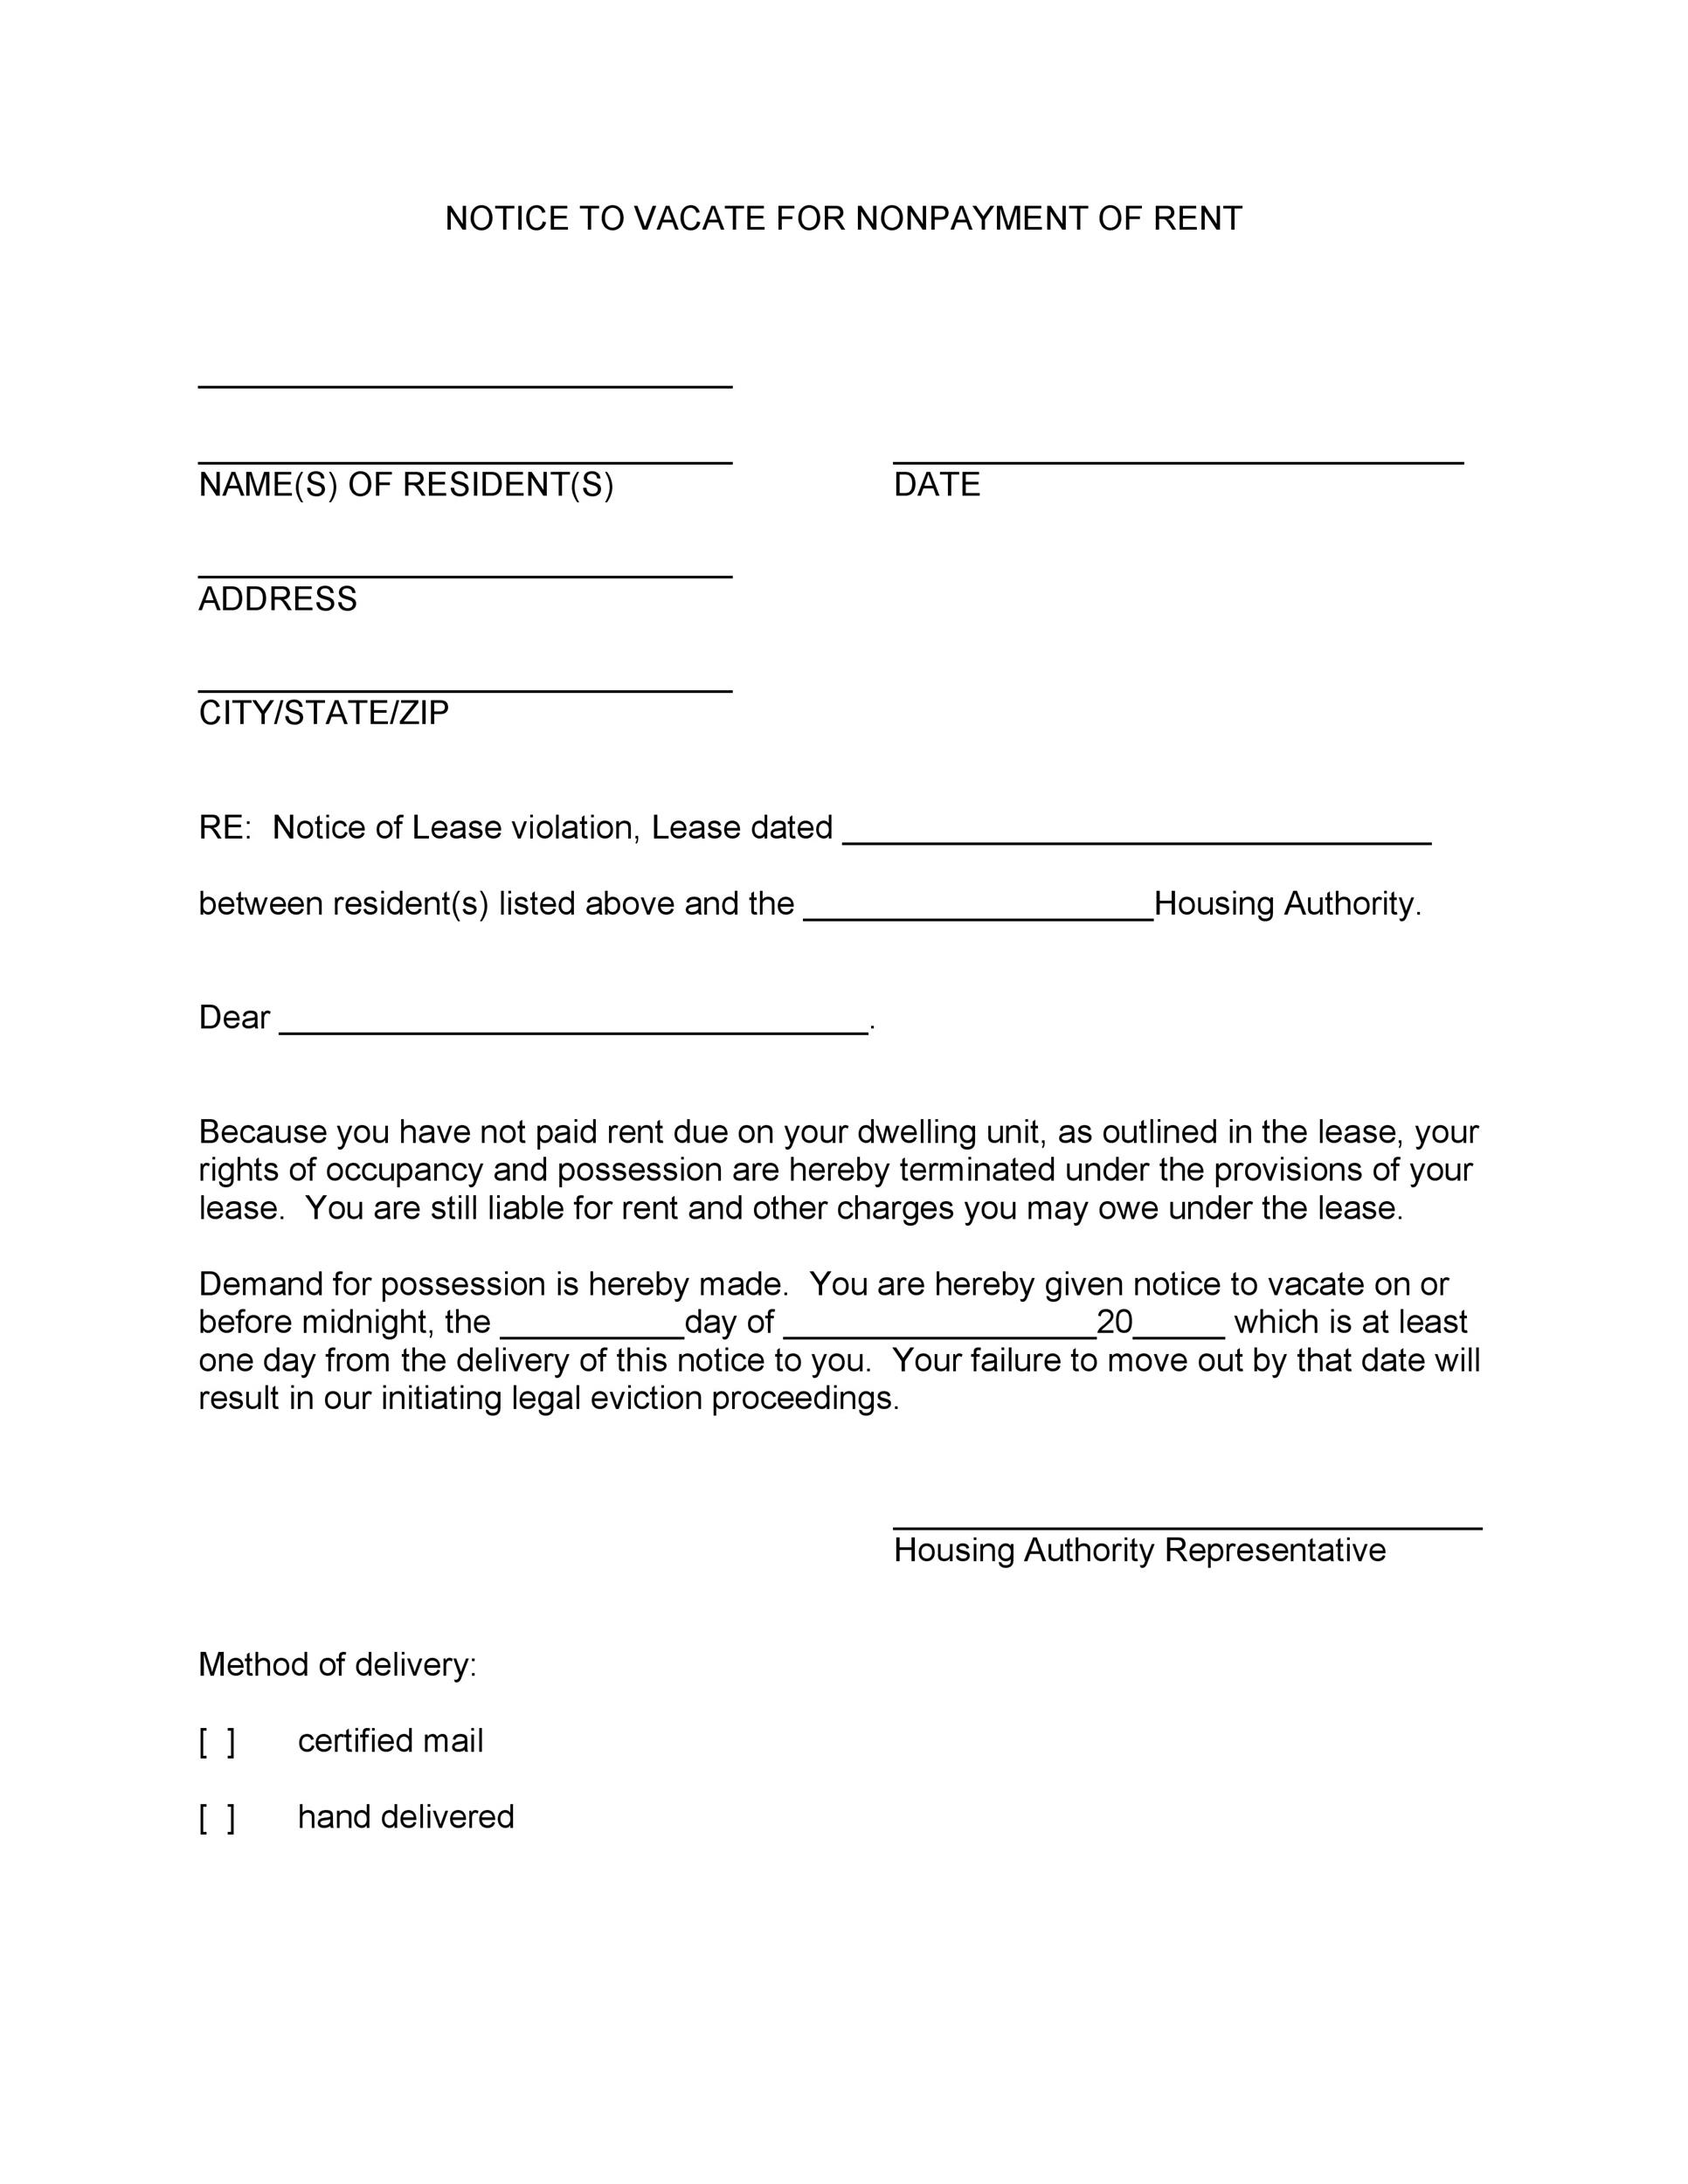 45 Eviction Notice Templates Lease Termination Letters – Template Notice to Vacate